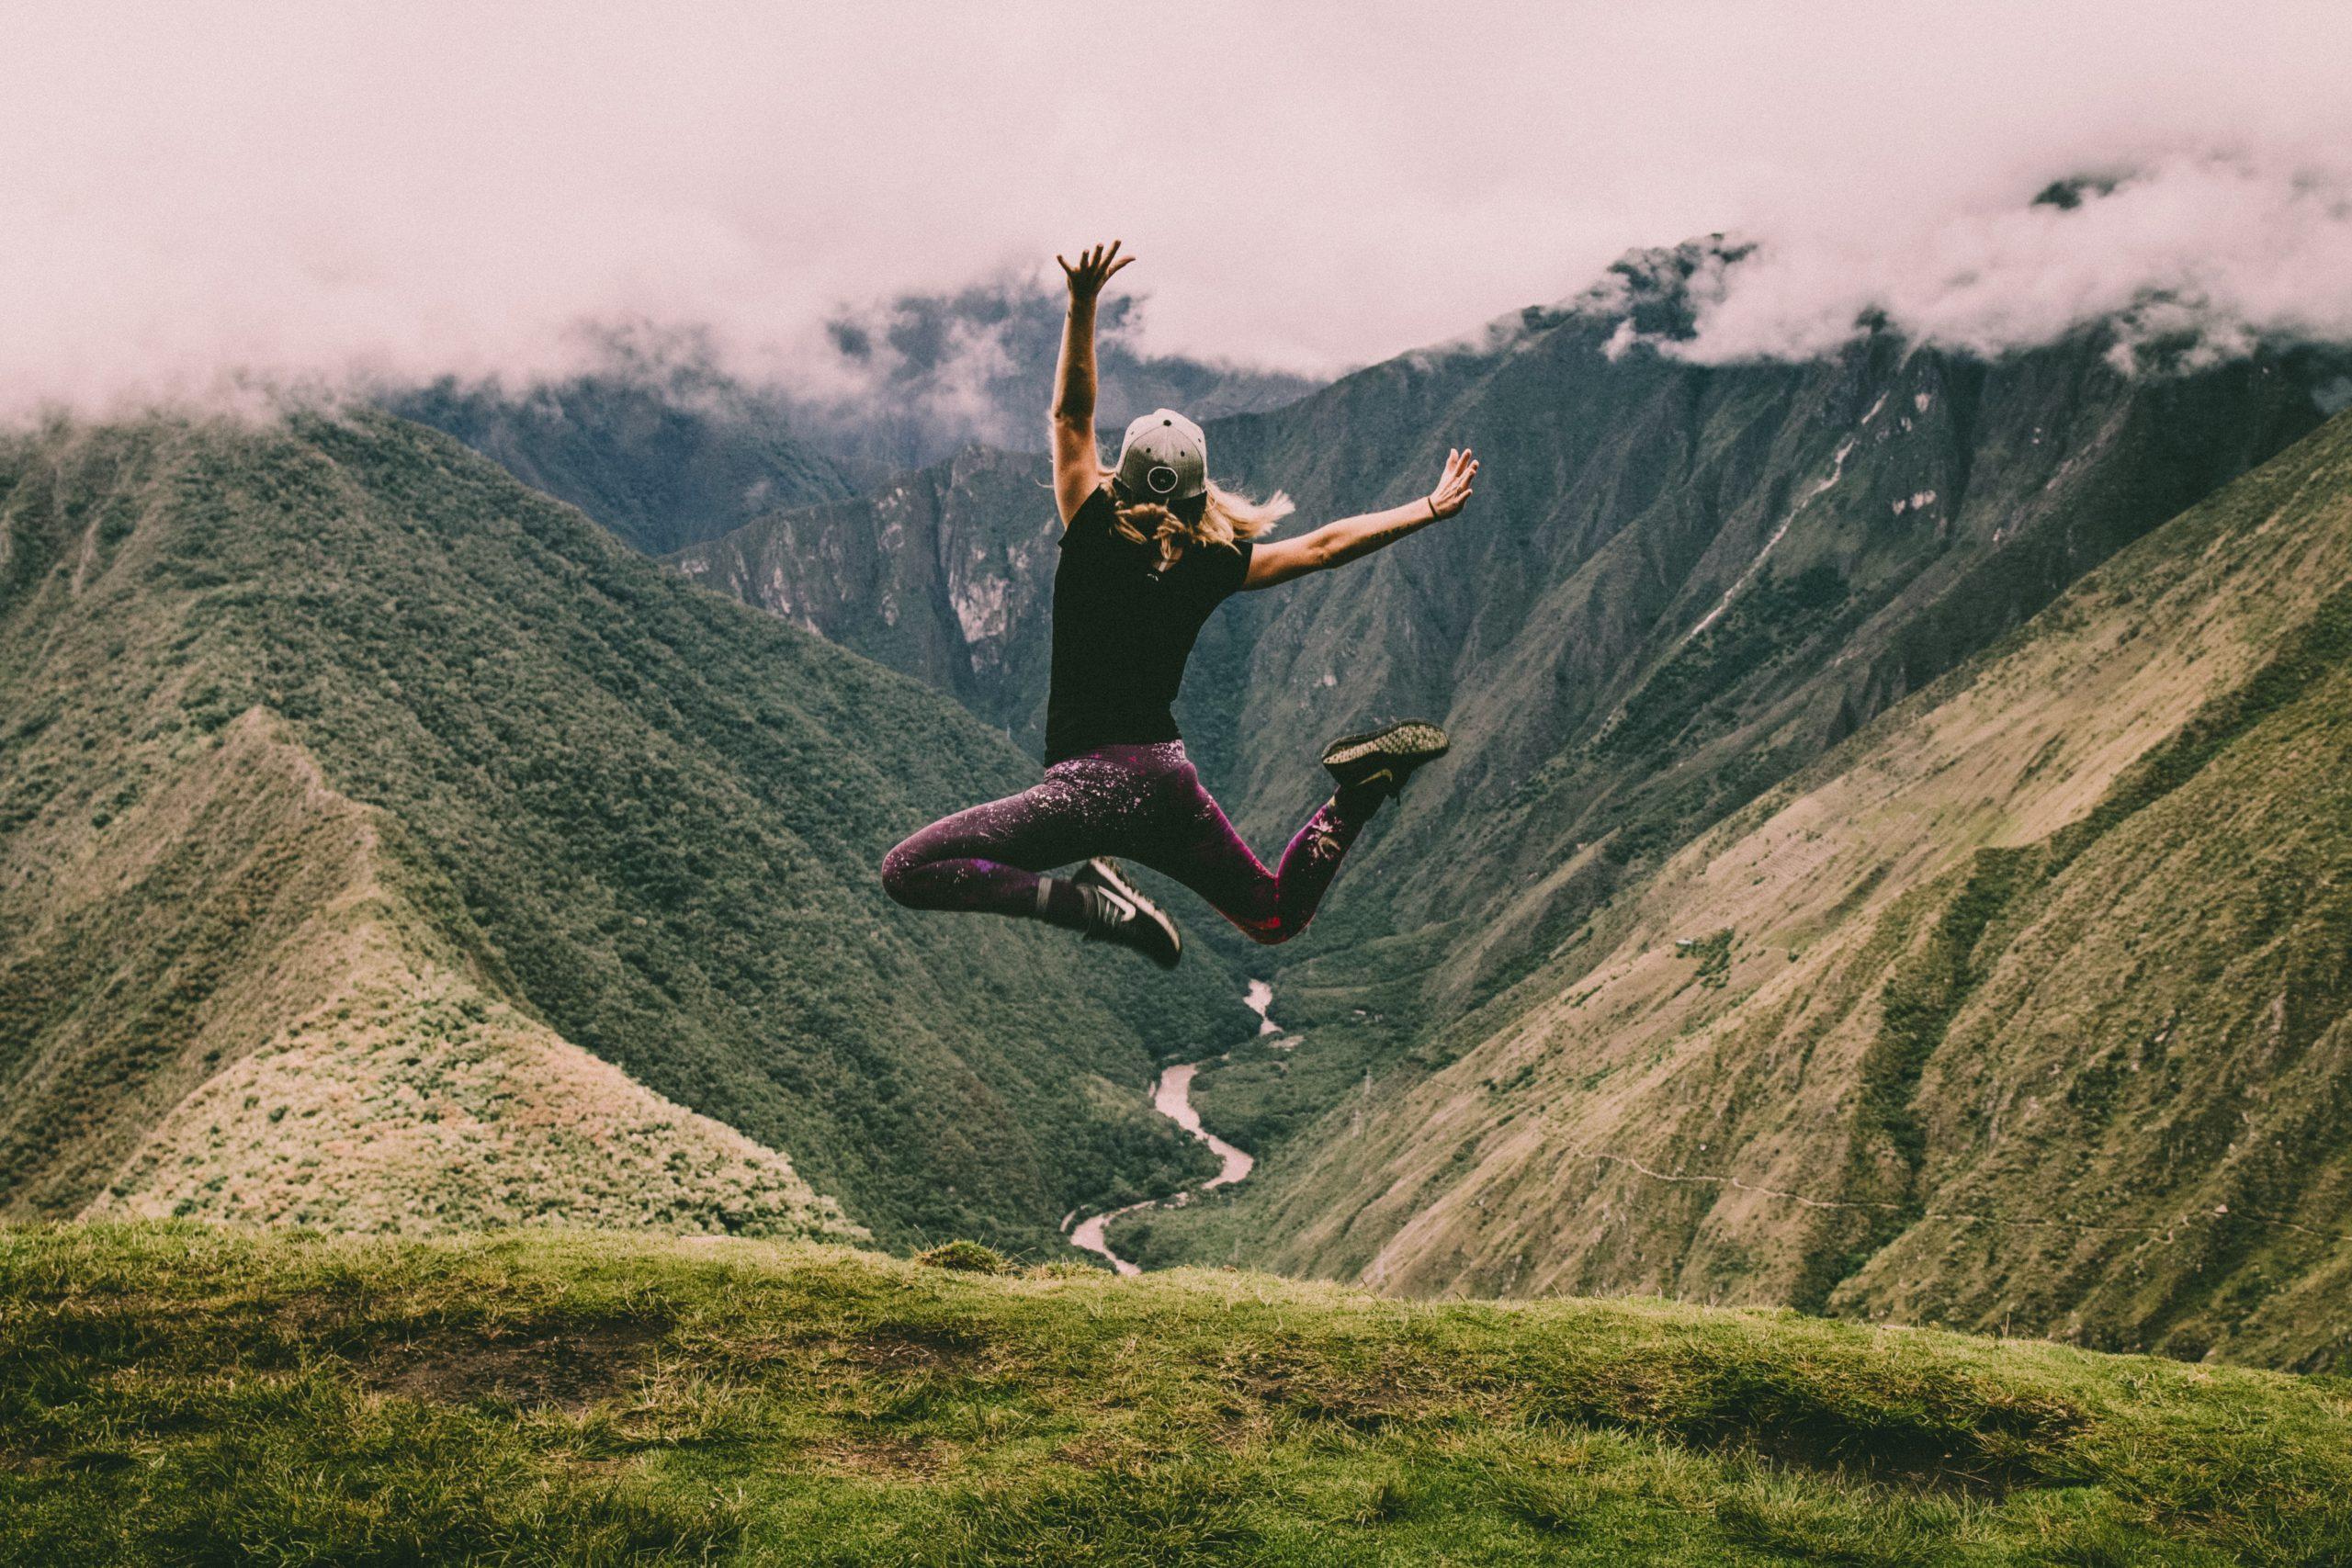 A fellow traveller had to have that classic jumping photo in this amazing place in the middle of the Andes.